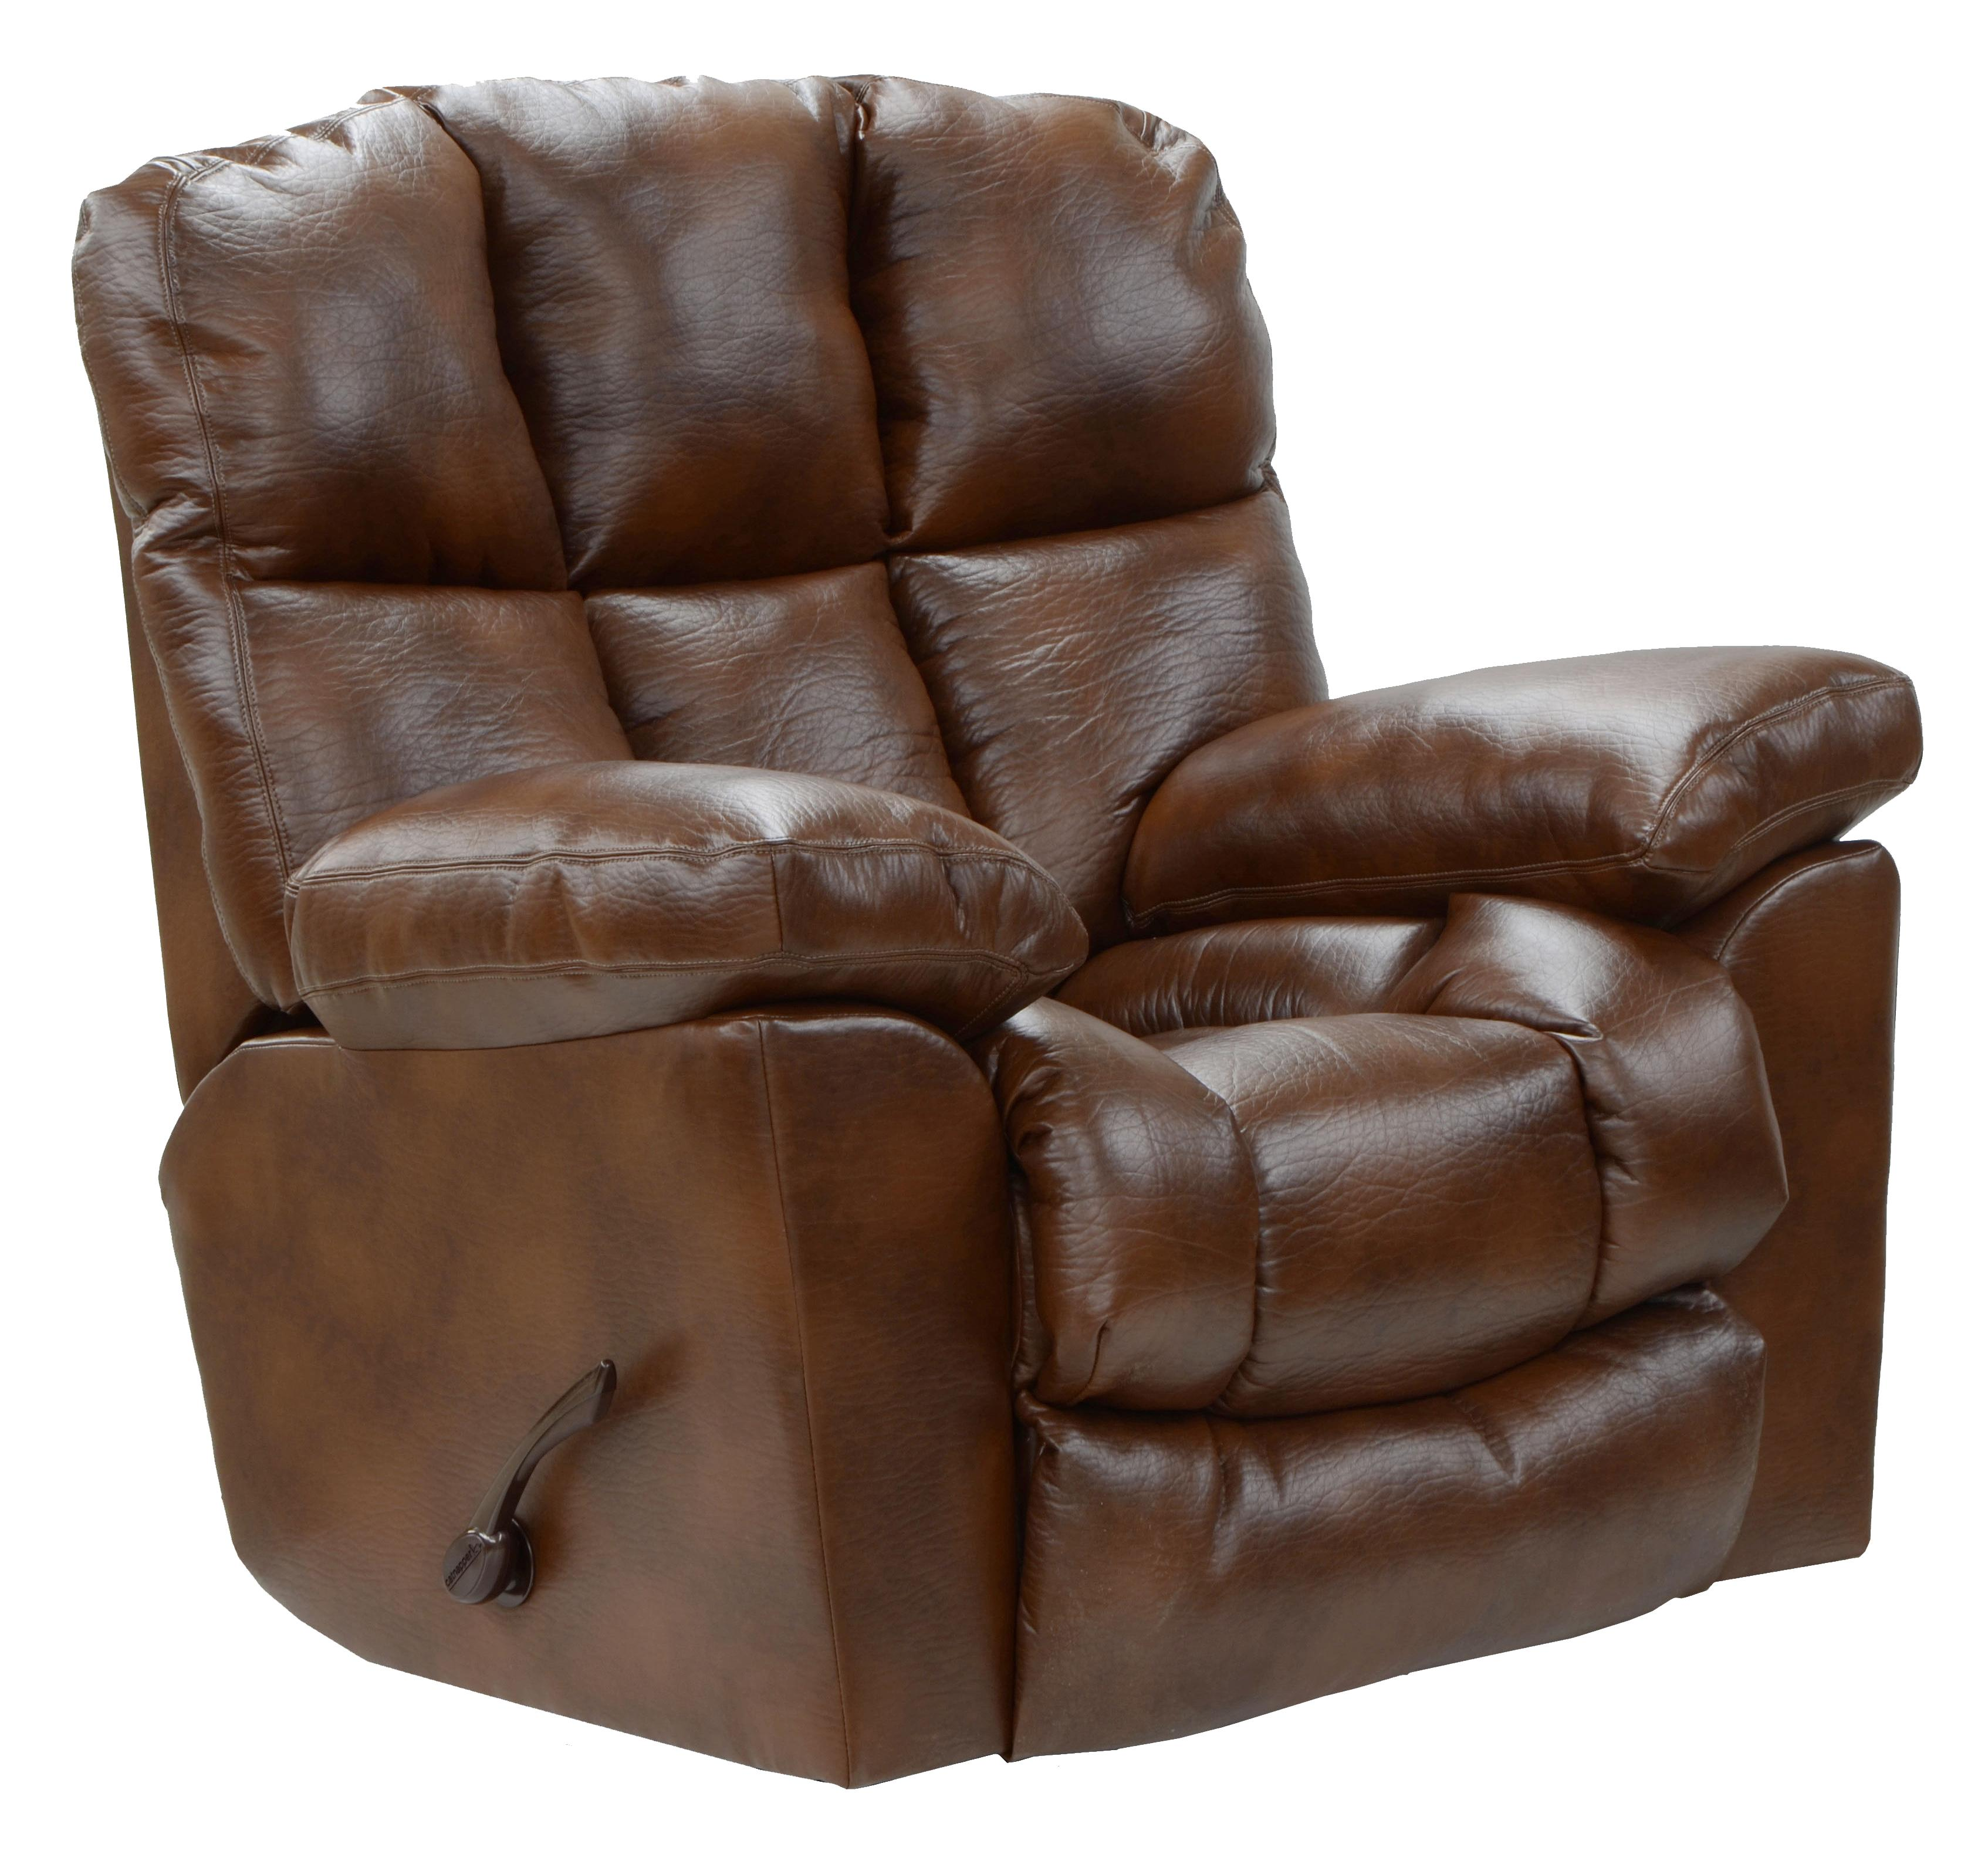 Catnapper Motion Chairs and Recliners Griffey Power Lay Flat Recliner - Item Number: 64549-7 1215-19 3015-19